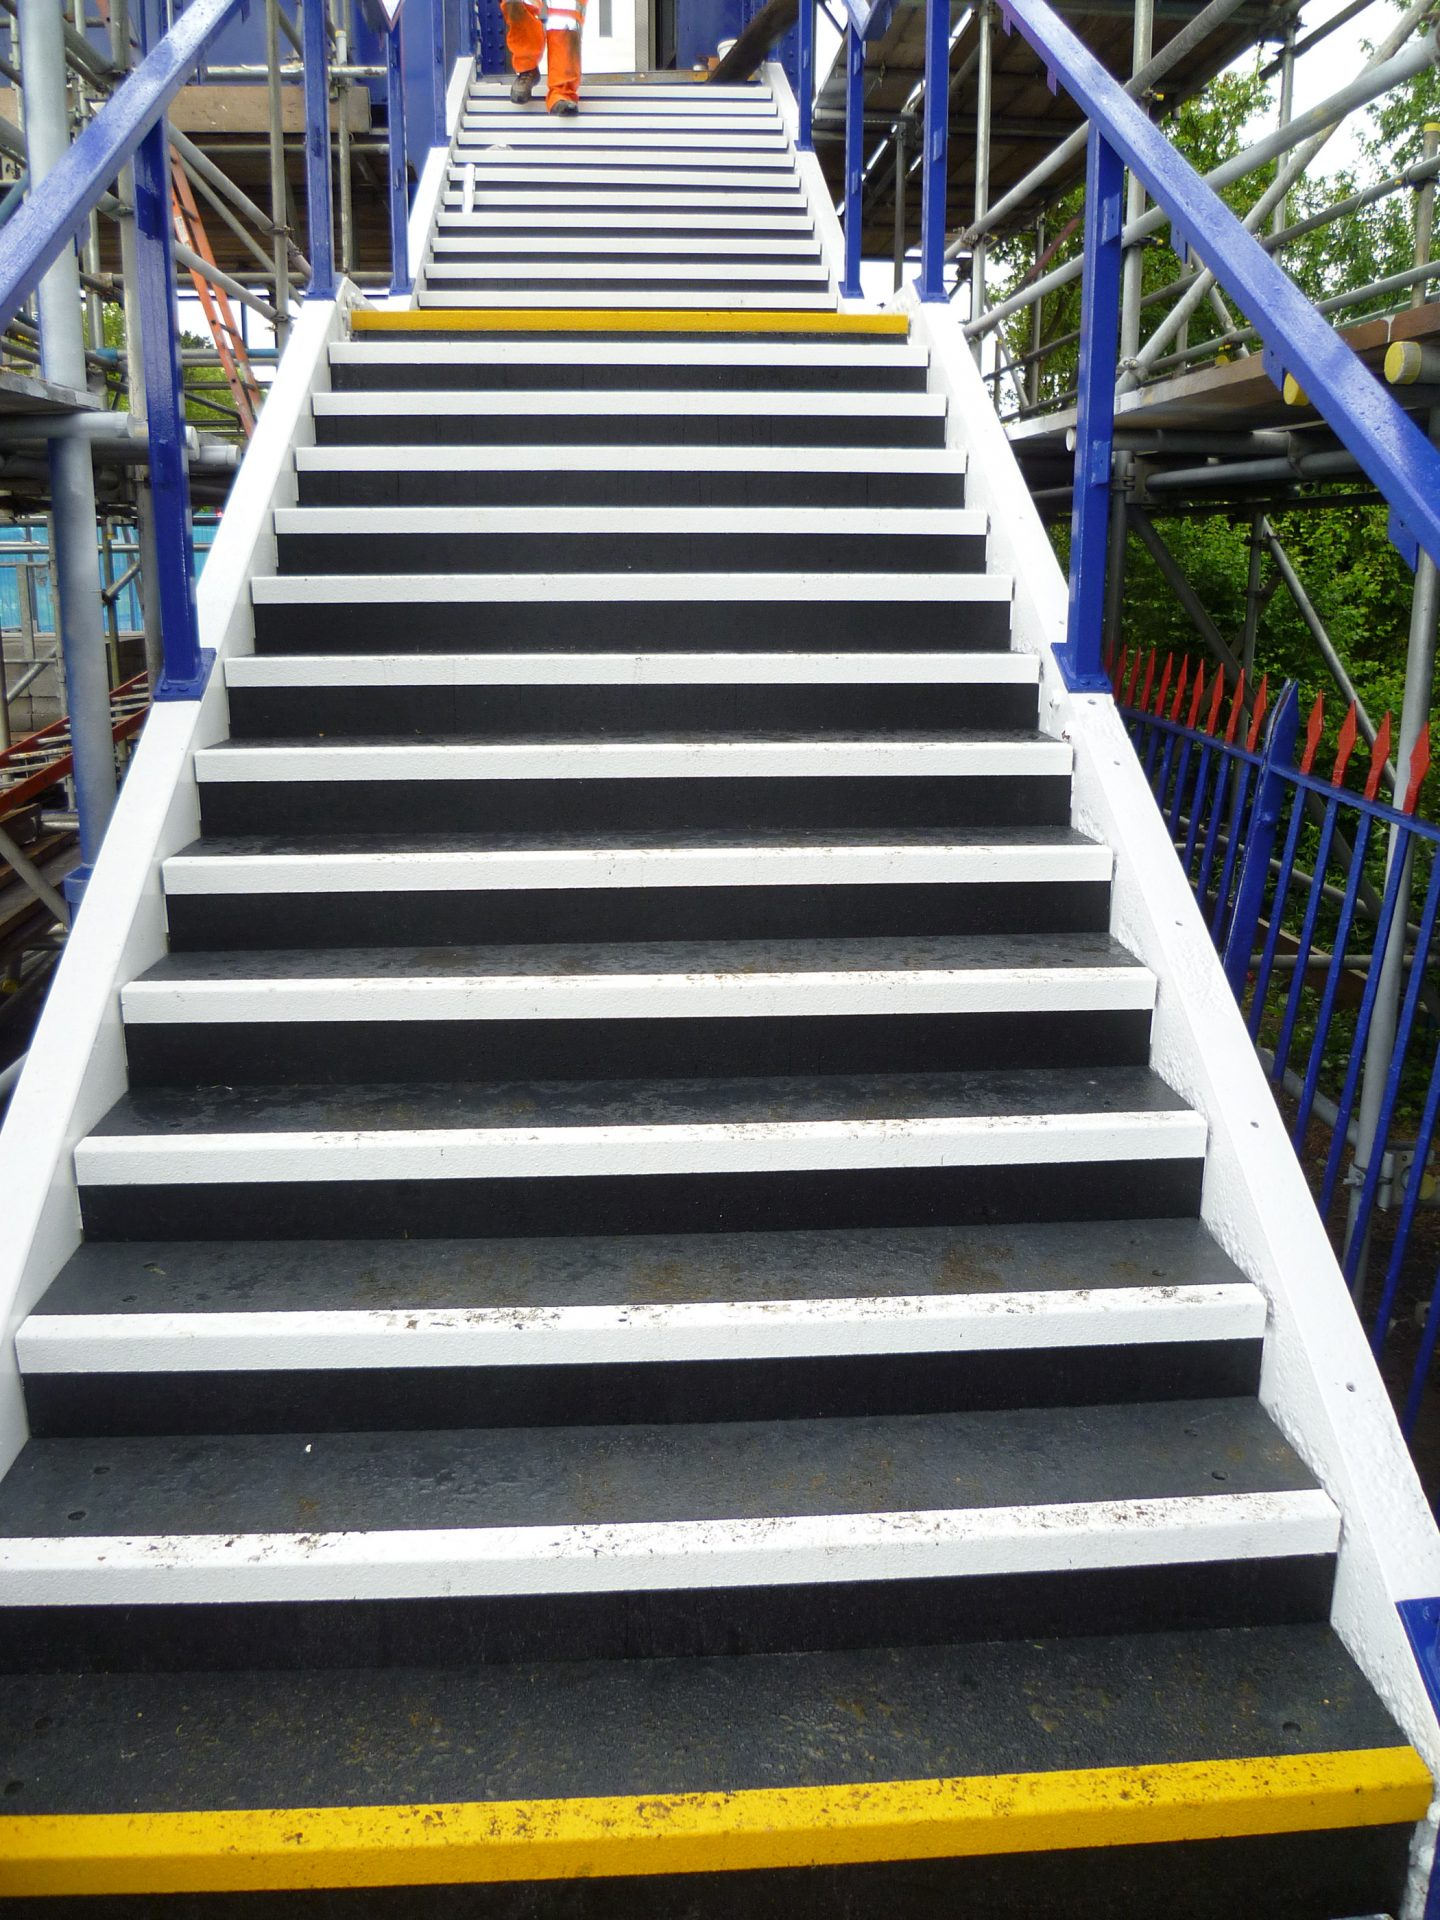 GRP load bearing stair treads fitted to cast iron footbridge